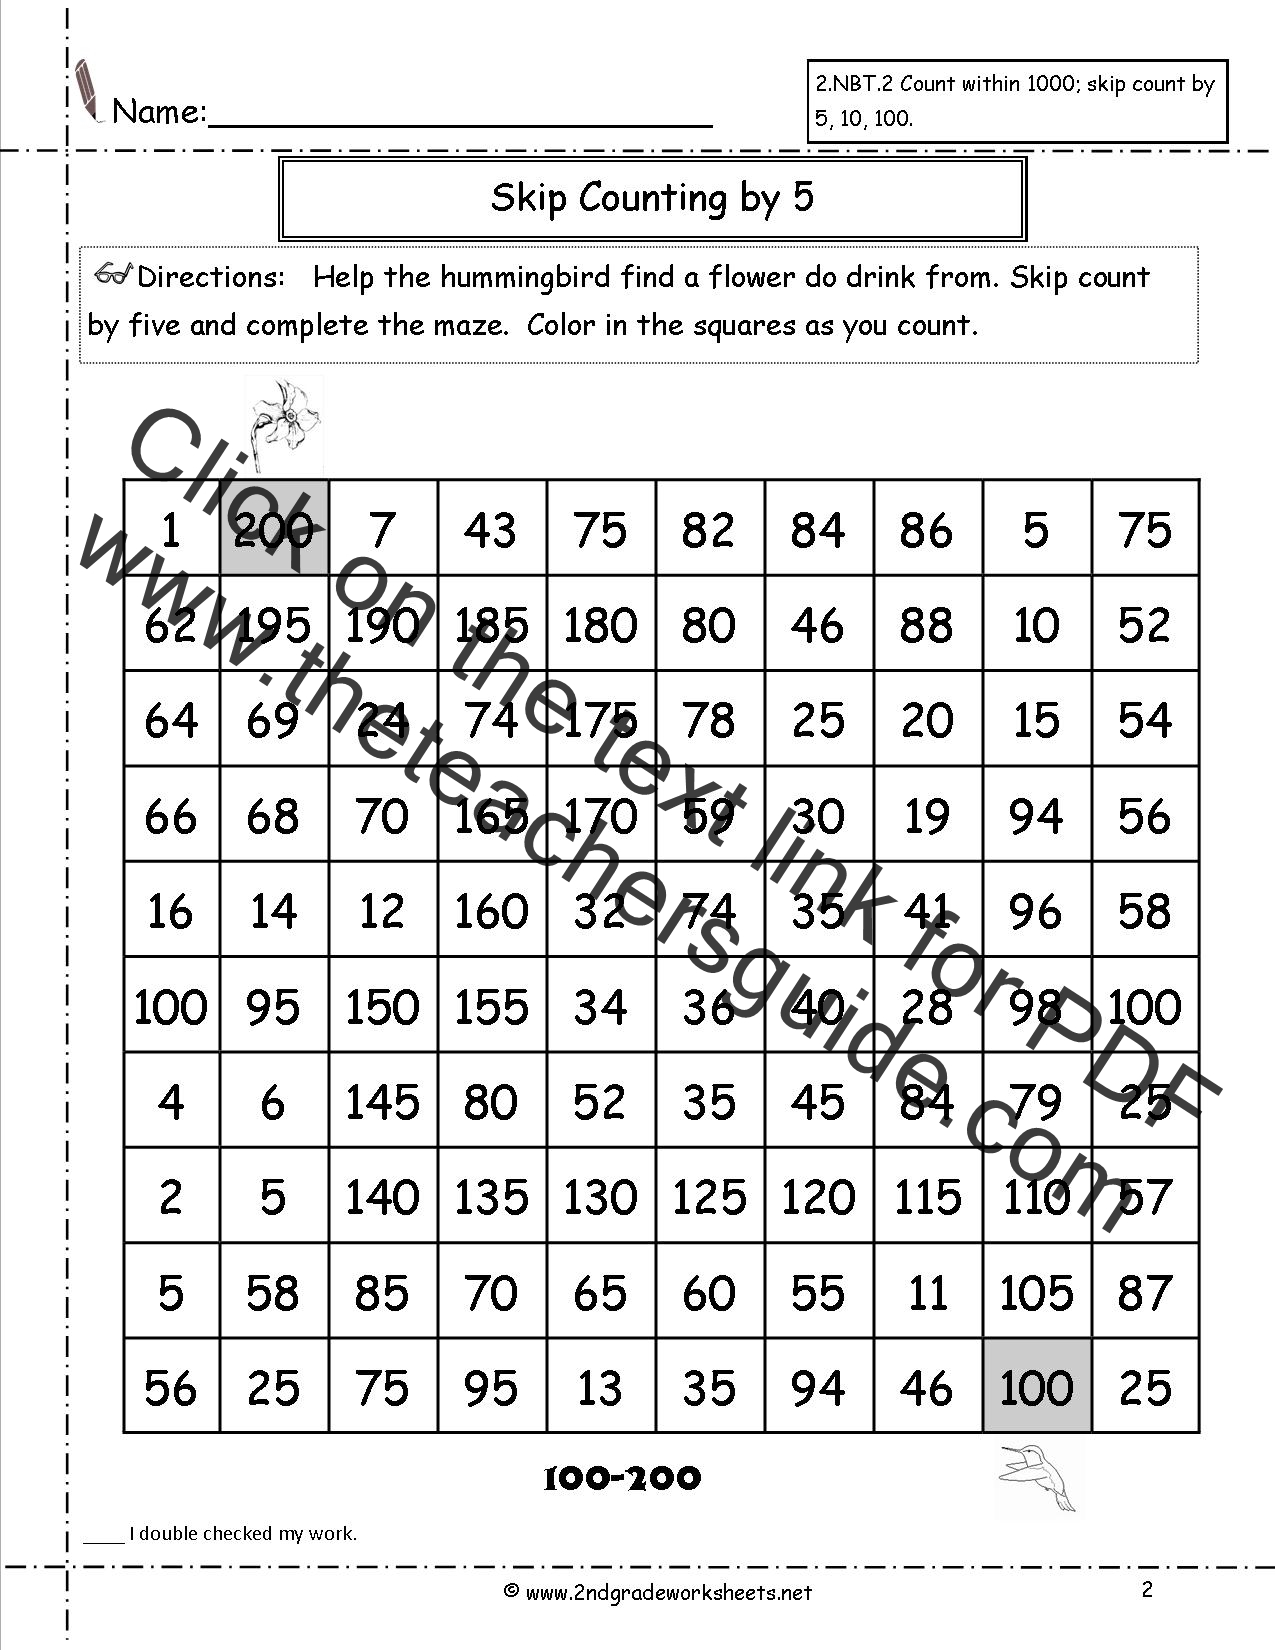 Worksheet Printable Skip Counting Worksheets free skip counting worksheets count by 5 maze